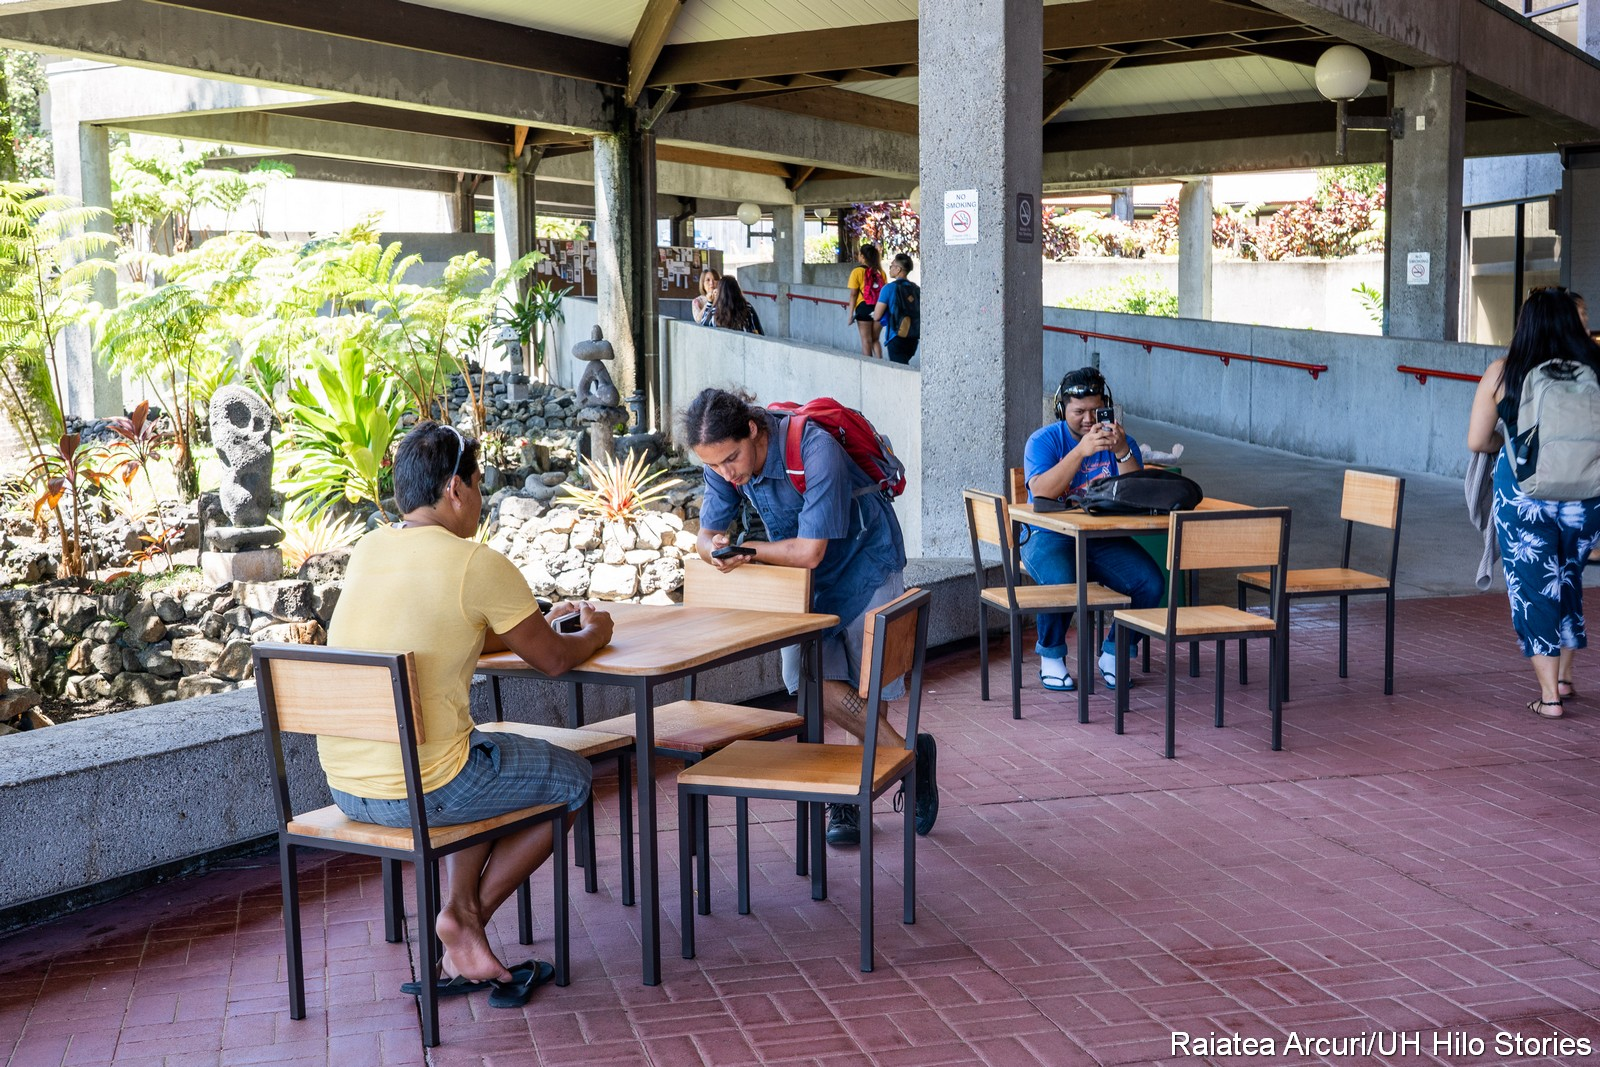 Students at beautiful wooden tables on the Library Lanai, with gardens in the background.